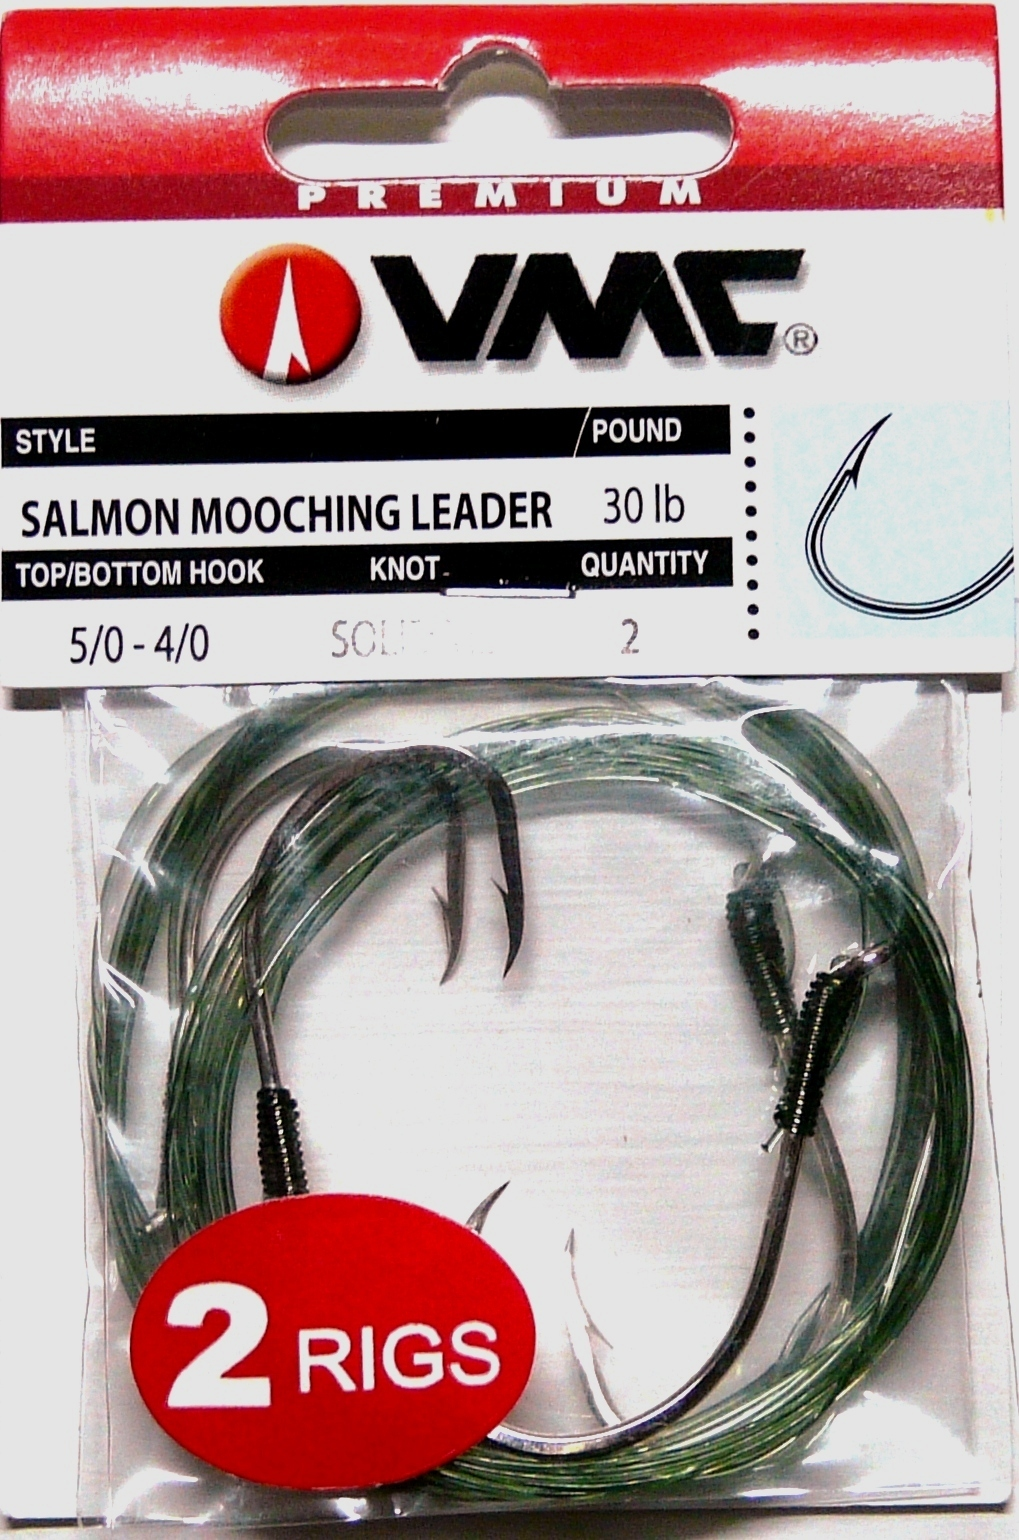 30 black snelled hooks stainless steel wire leaders 60 lbs strength 7//0 or 8//0